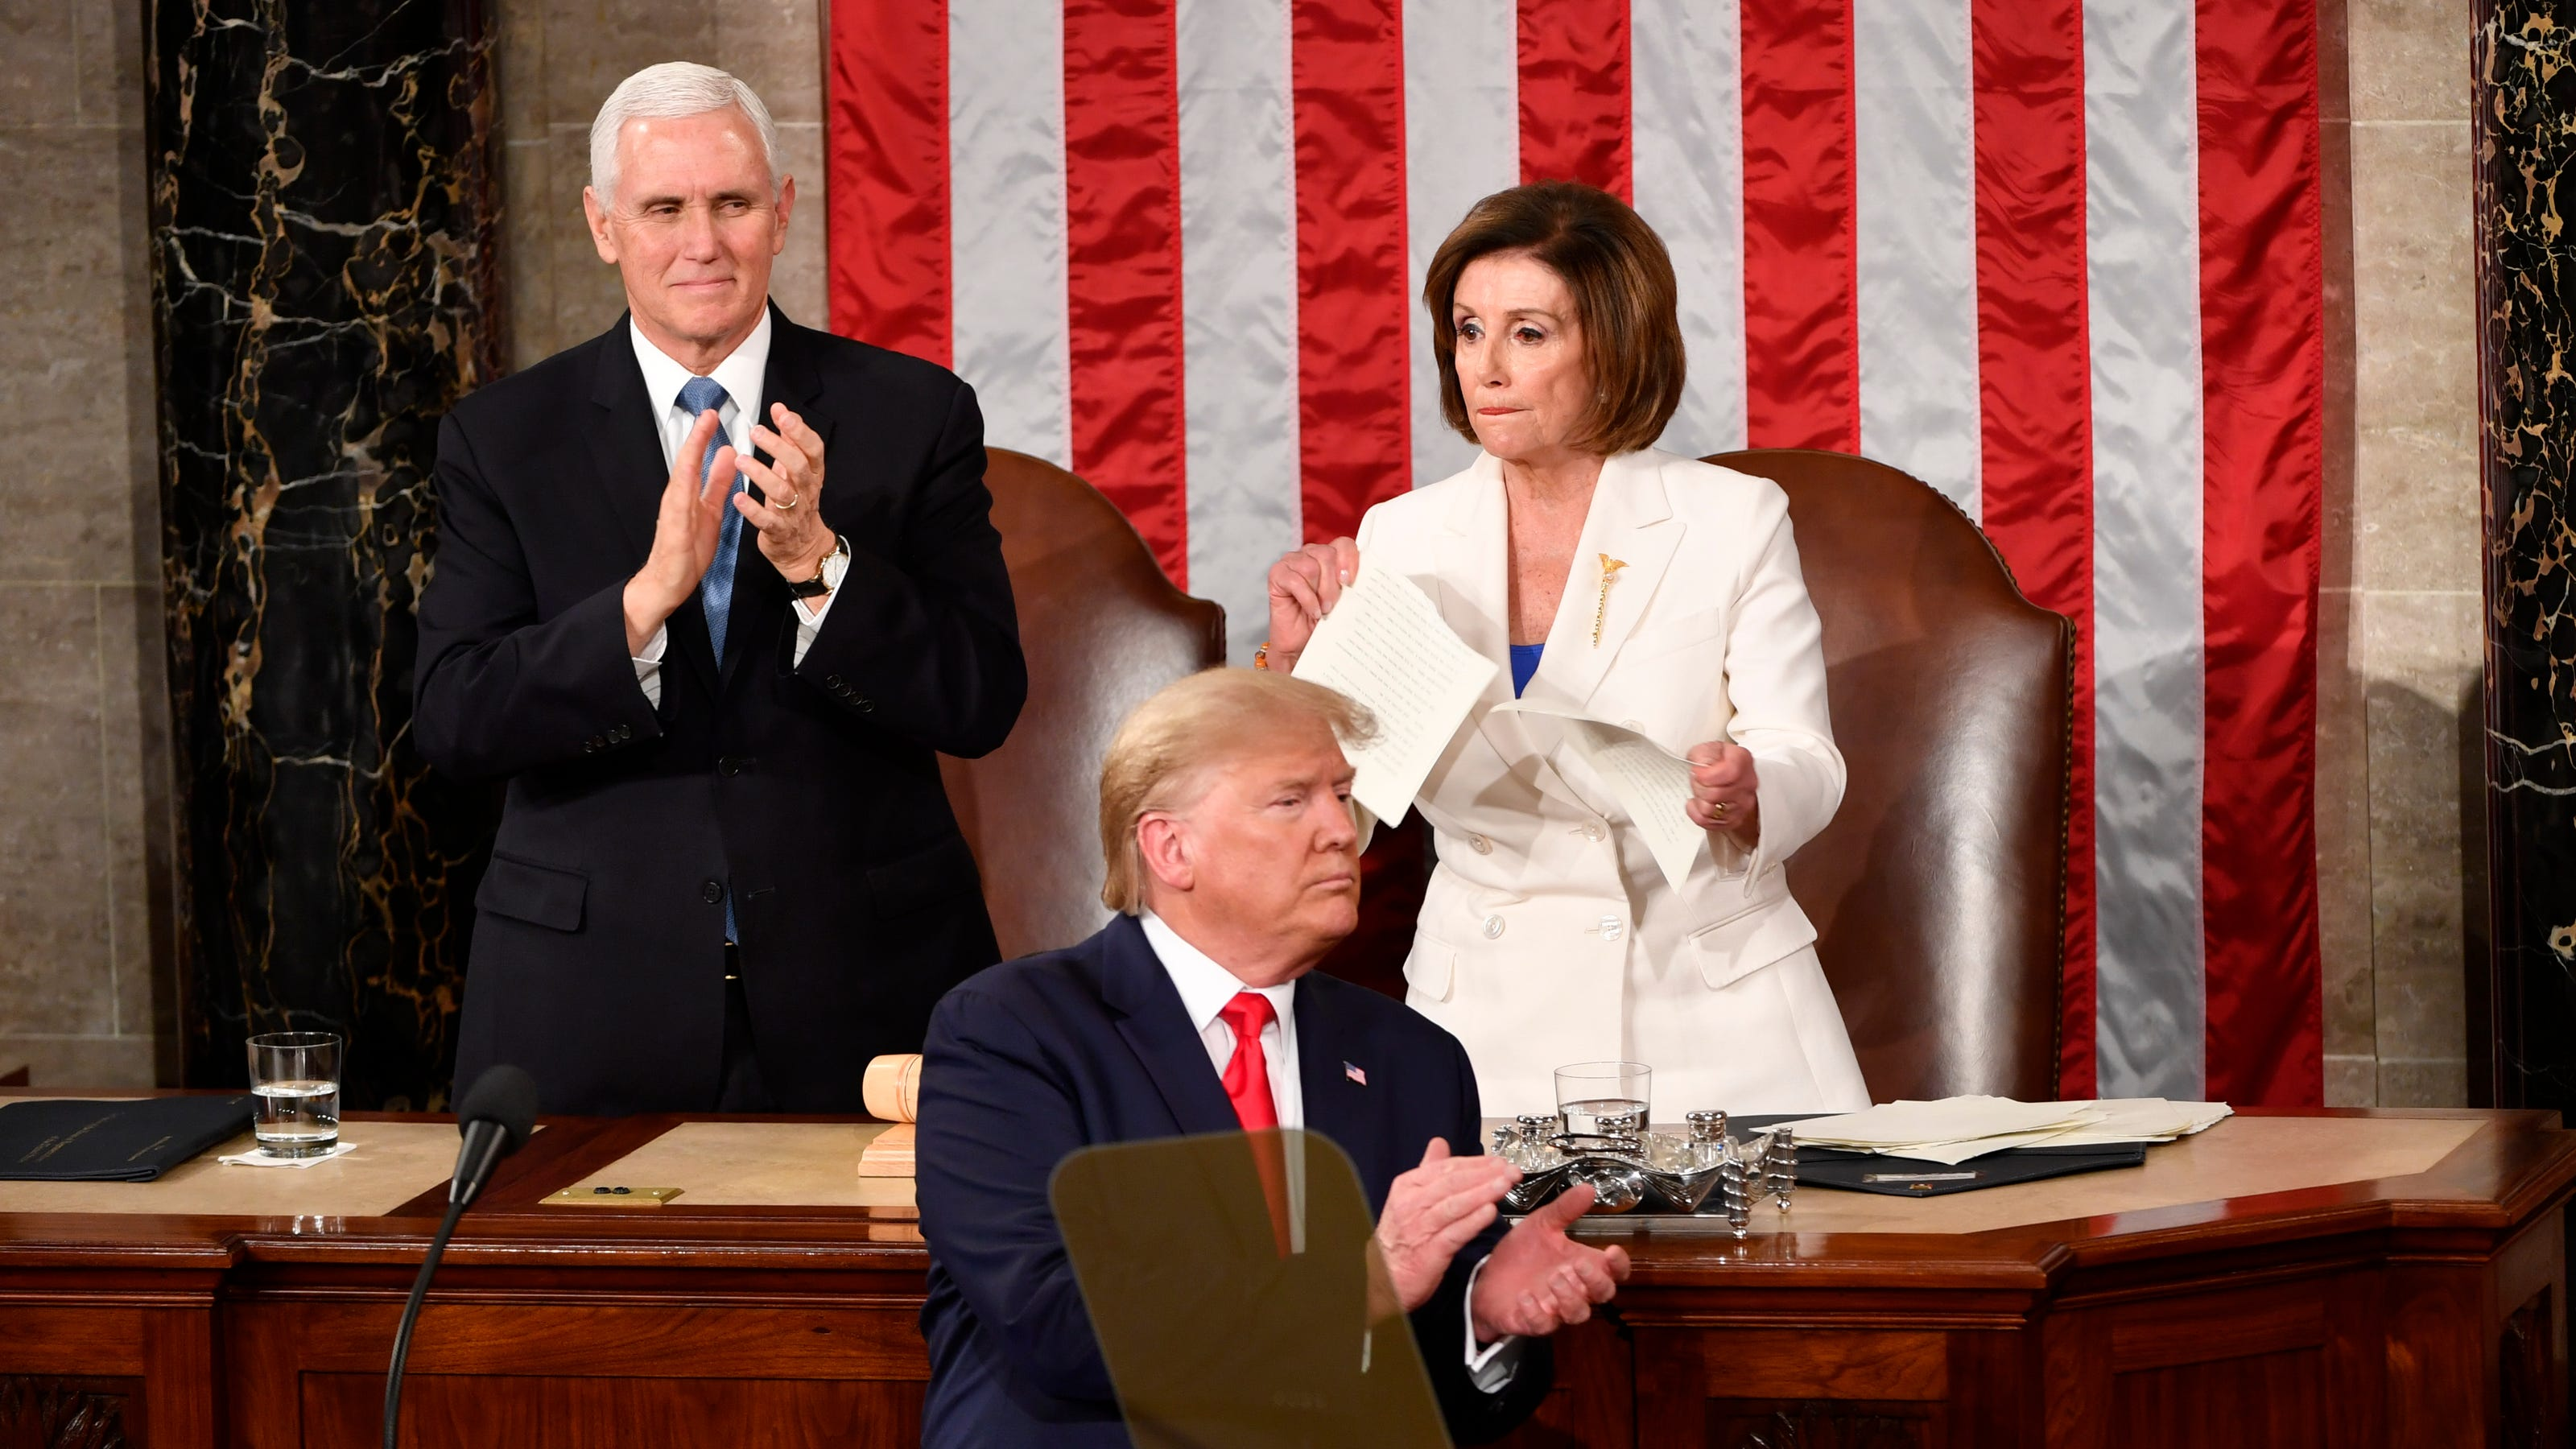 Trump says it's 'illegal' for Pelosi to tear up his State of the Union address. Experts say that's not true - USA TODAY thumbnail